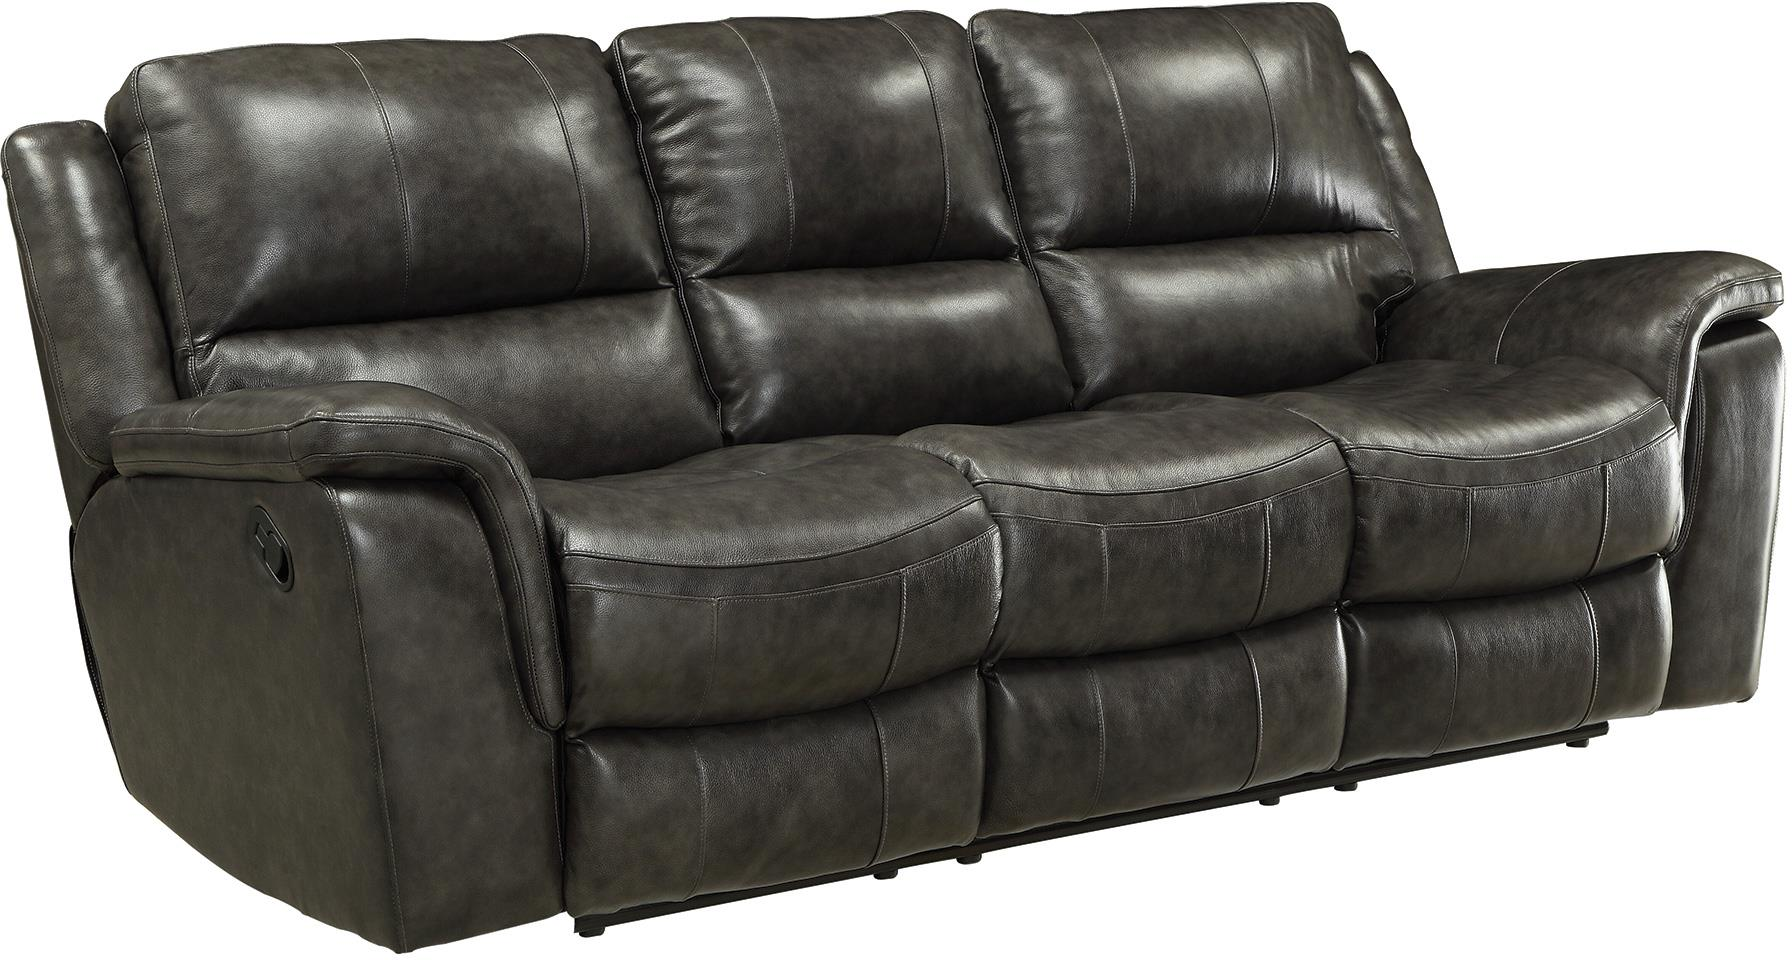 Coaster Wingfield Motion Sofa With Pillow Arms Dunk